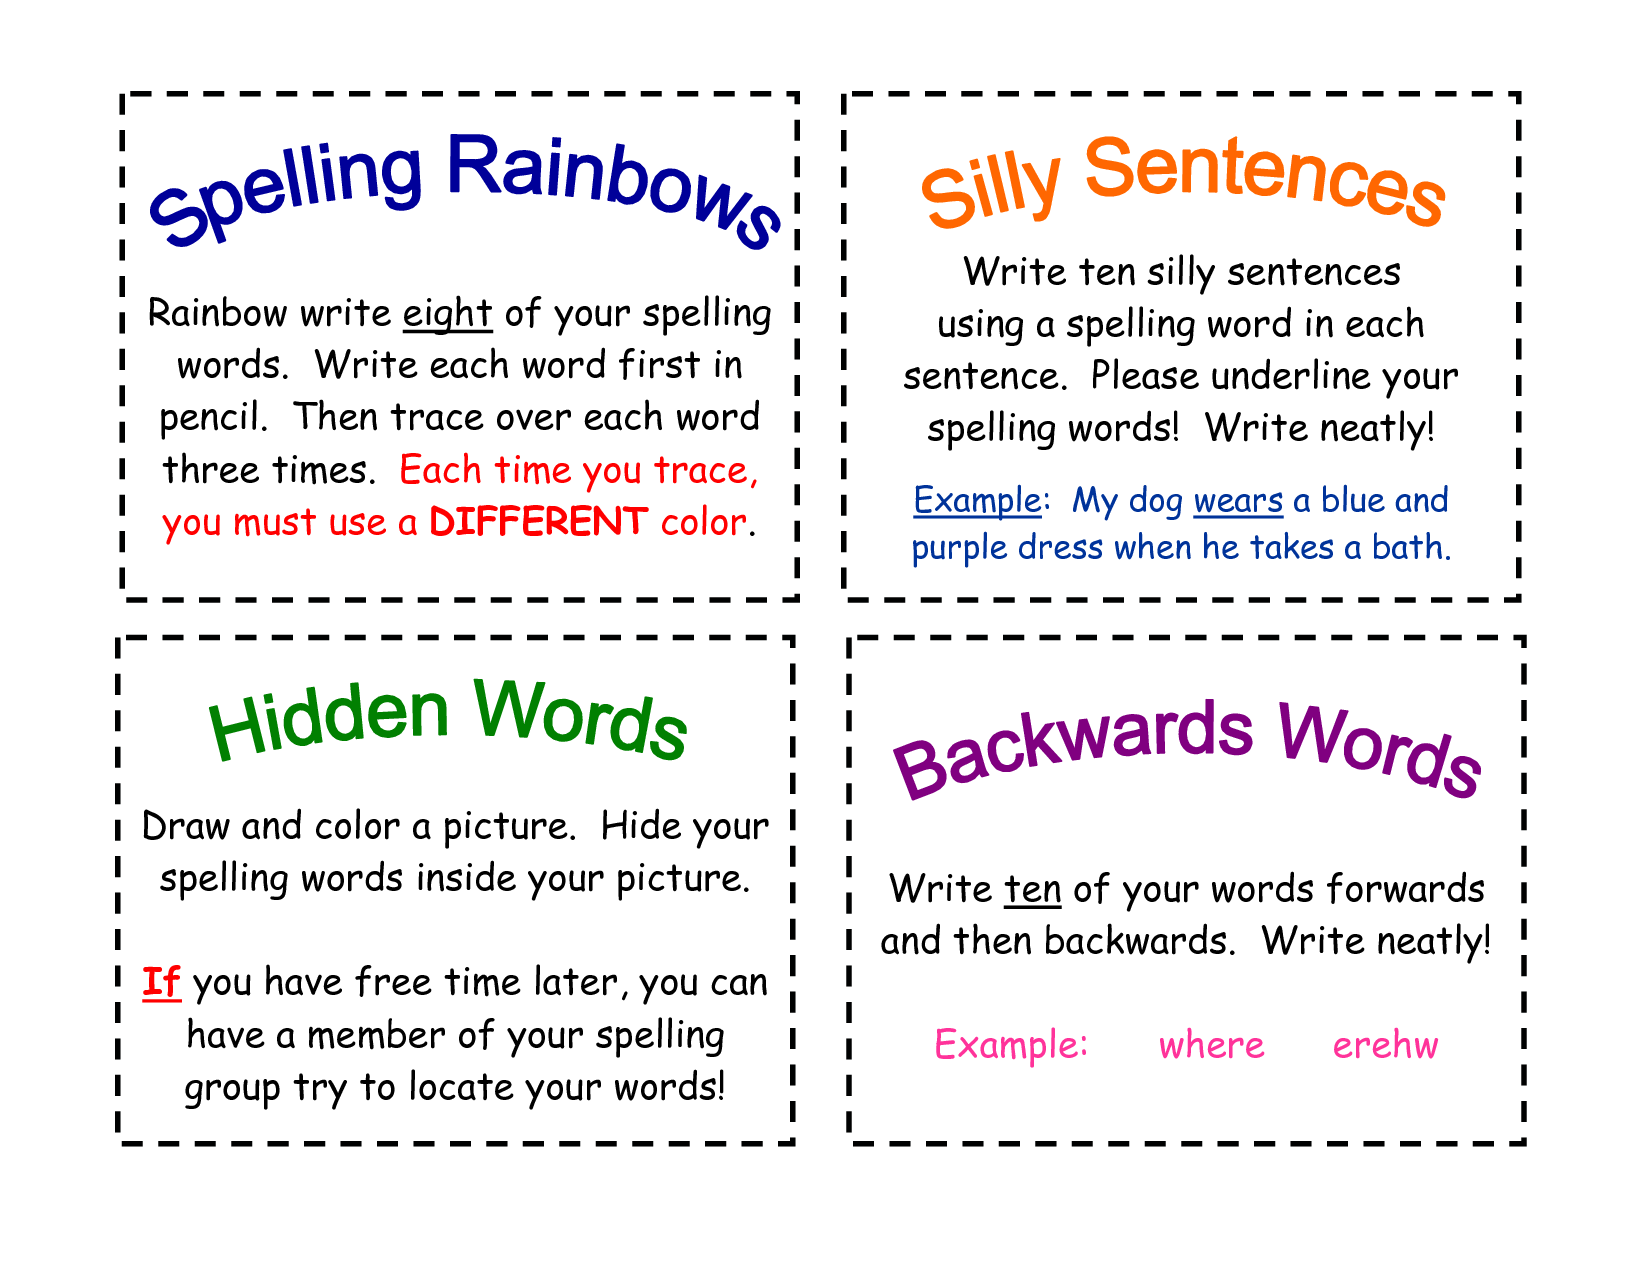 worksheet Rainbow Spelling Worksheet google image result for httpimg docstoccdn comthumborig fun spelling activities by uk teaching resources tes